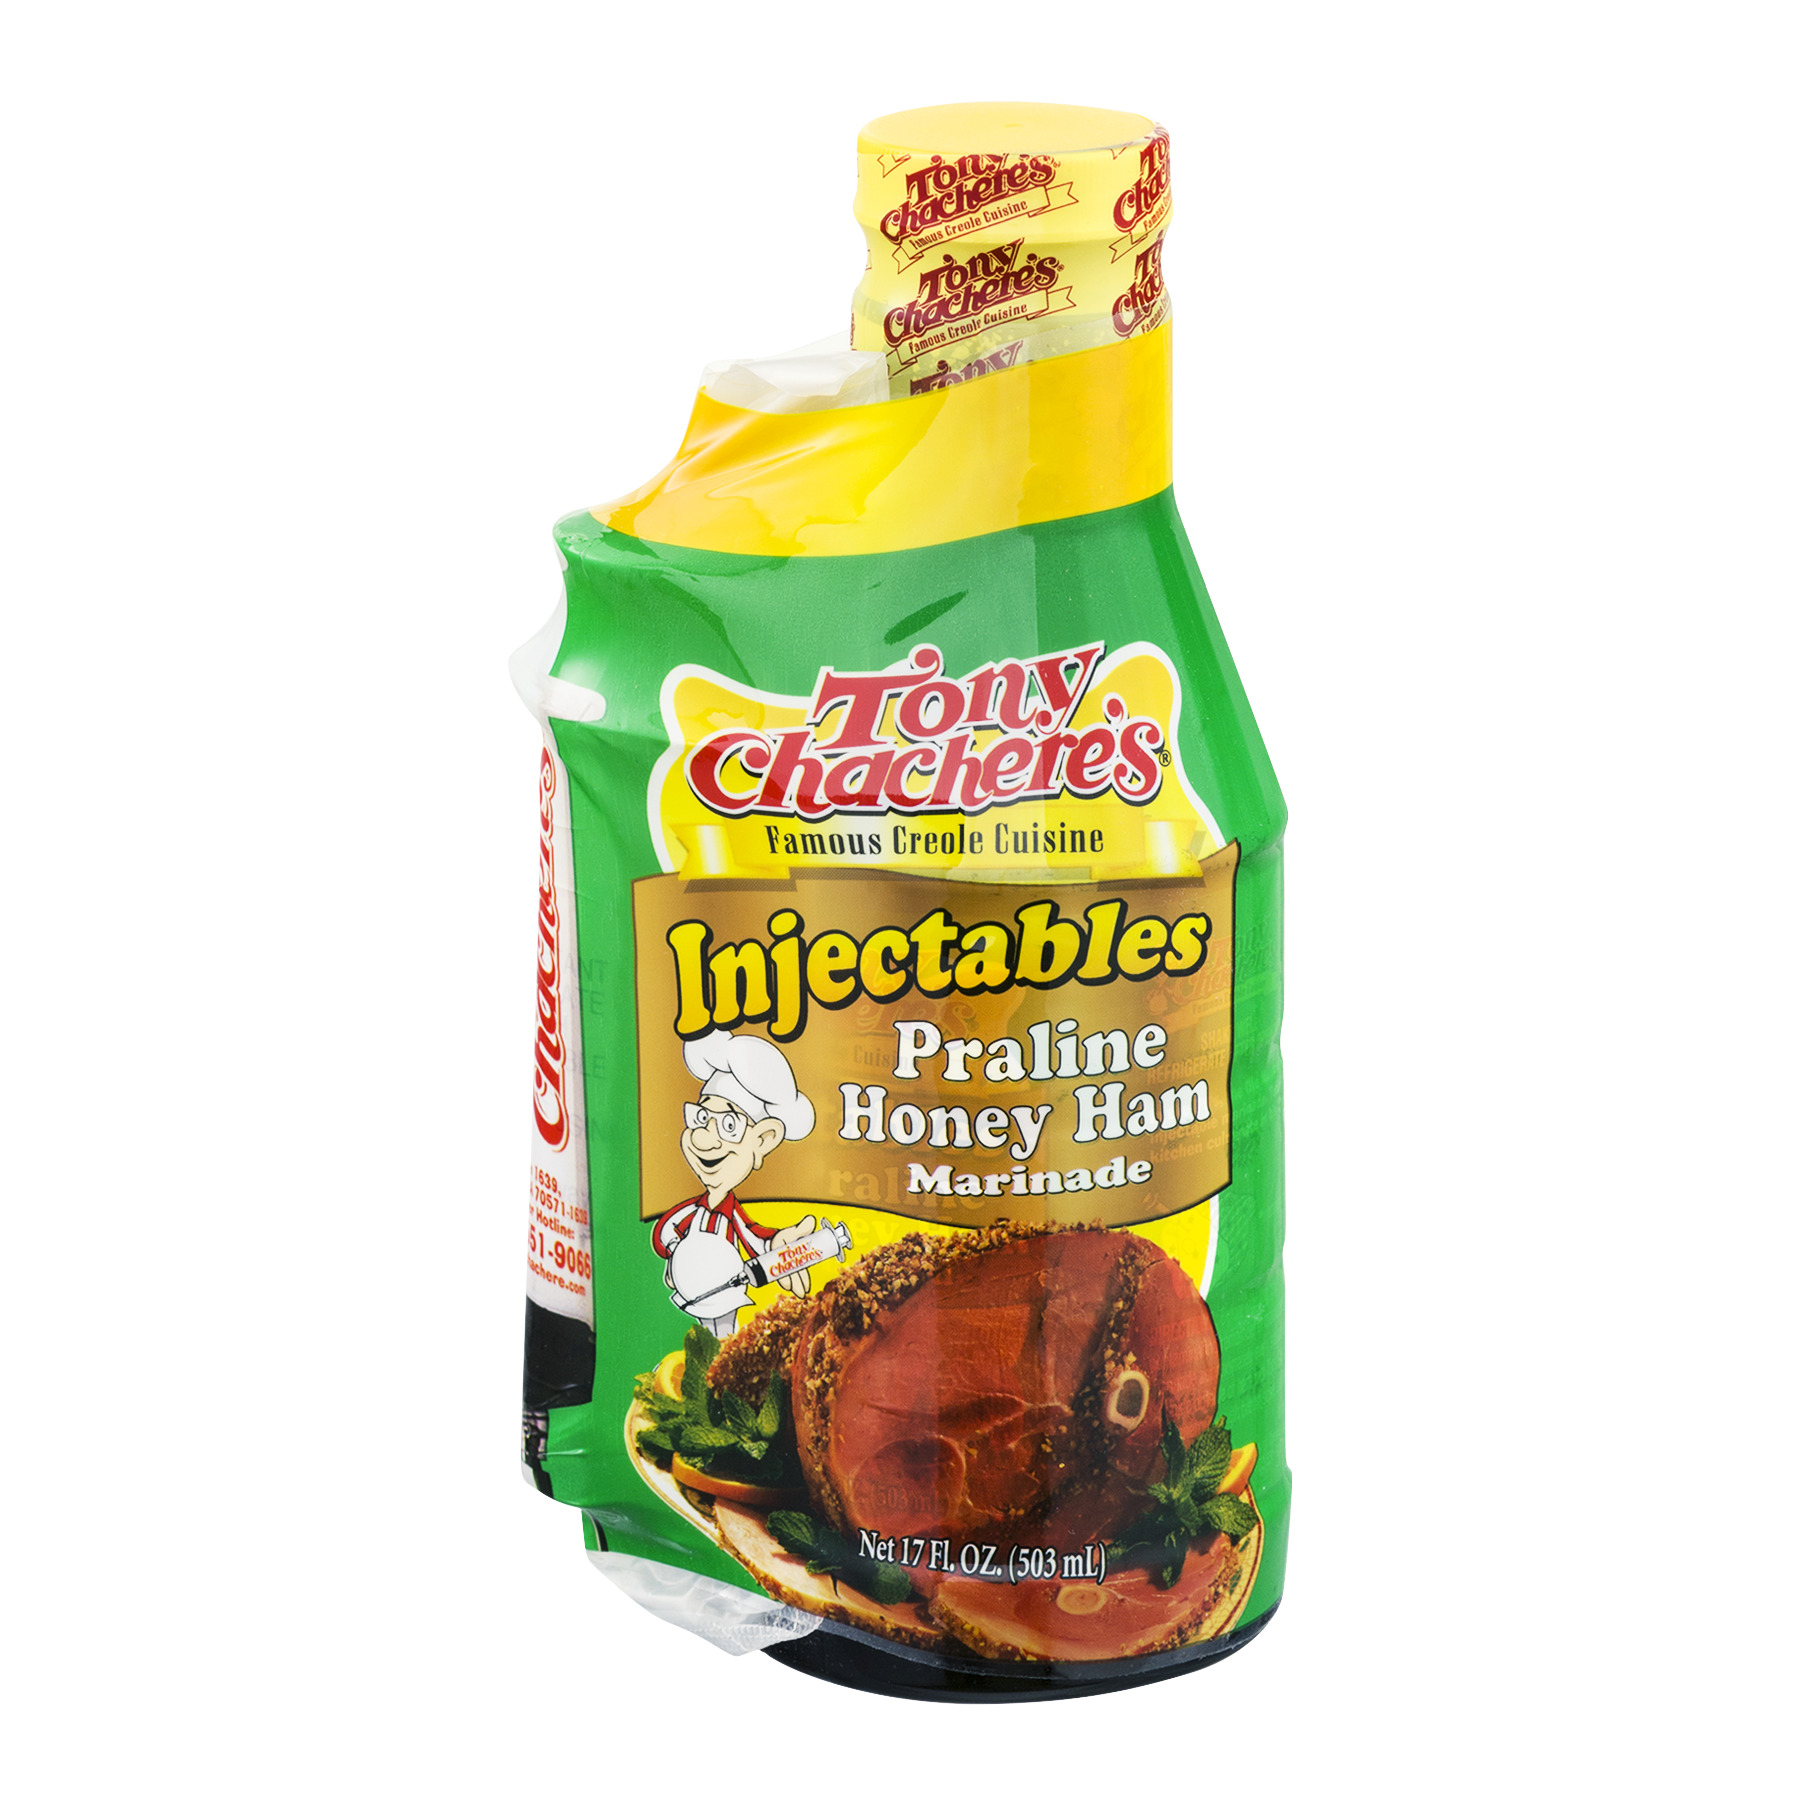 Tony Chacheres Tony Chacheres Injectables Marinade, 17 oz